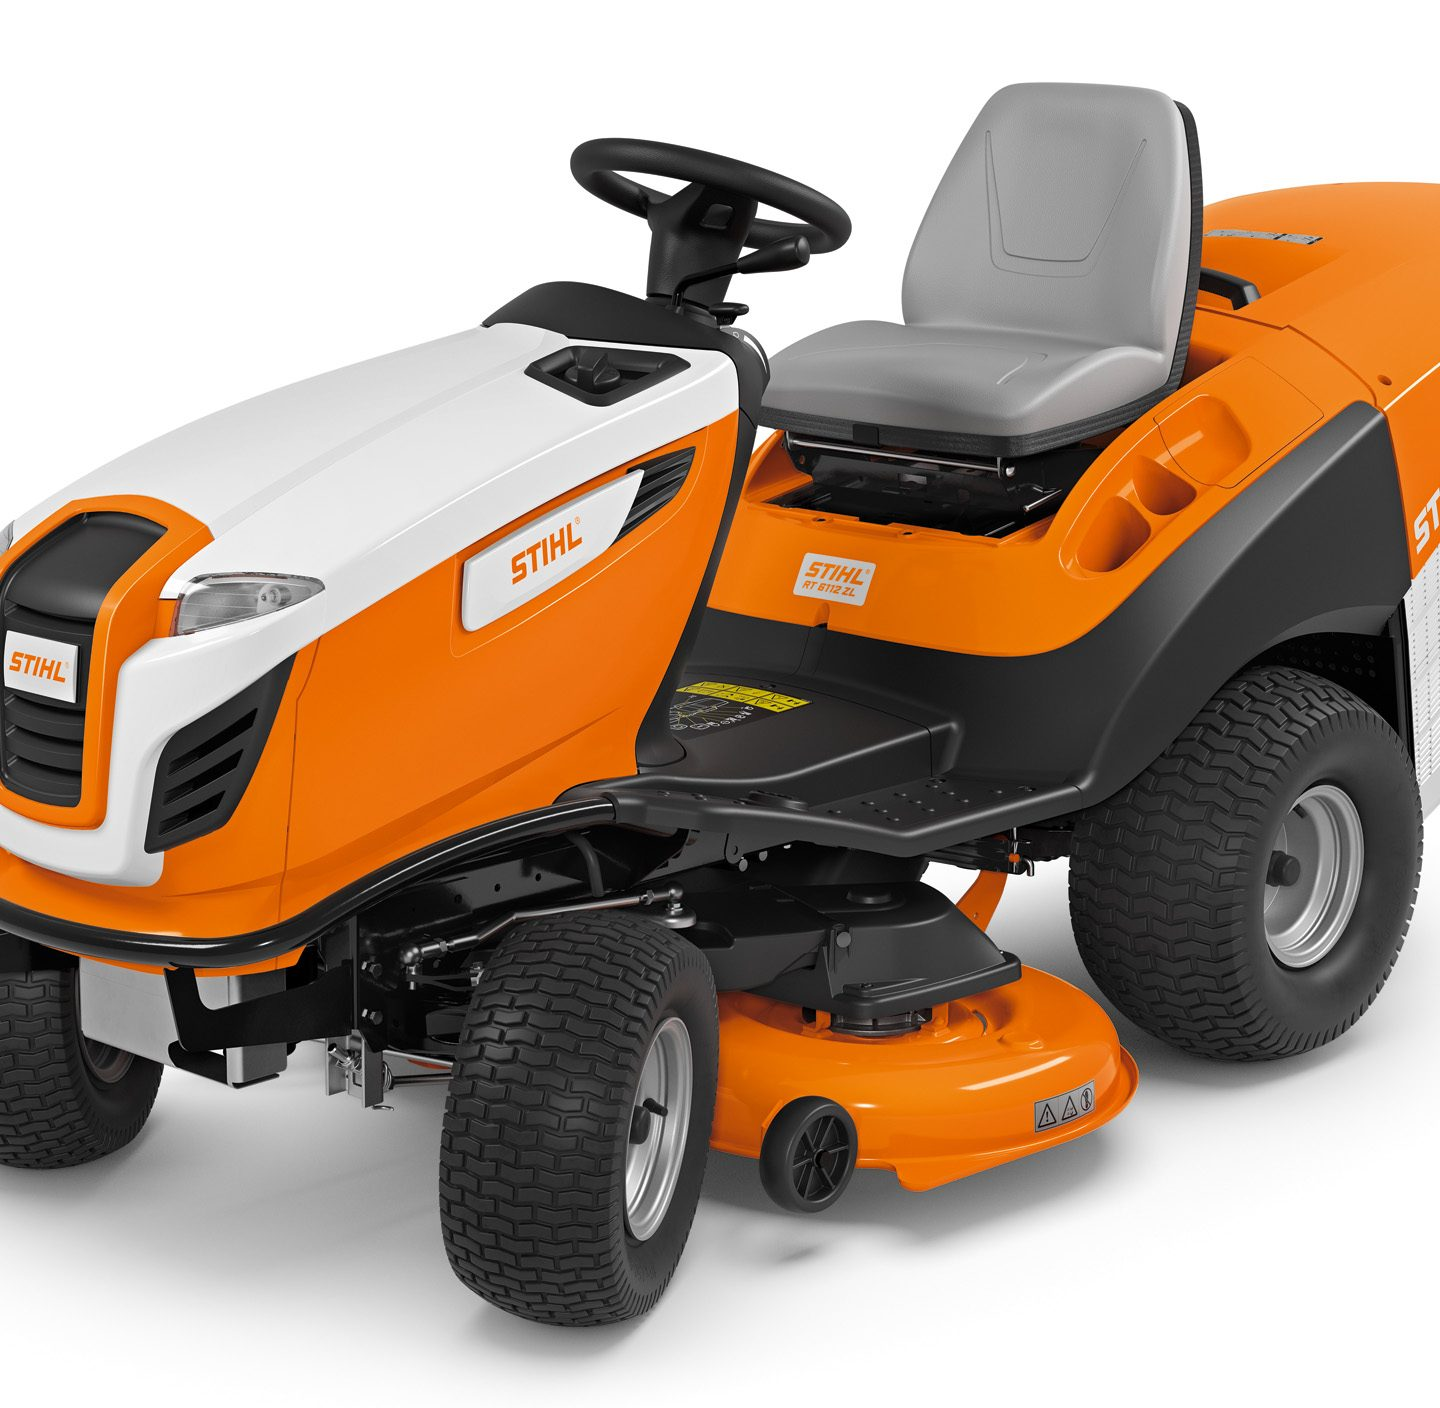 RT 6112 ZL - POWERFUL LAWN TRACTOR WITH EXCELLENT MOWING PERFORMANCE